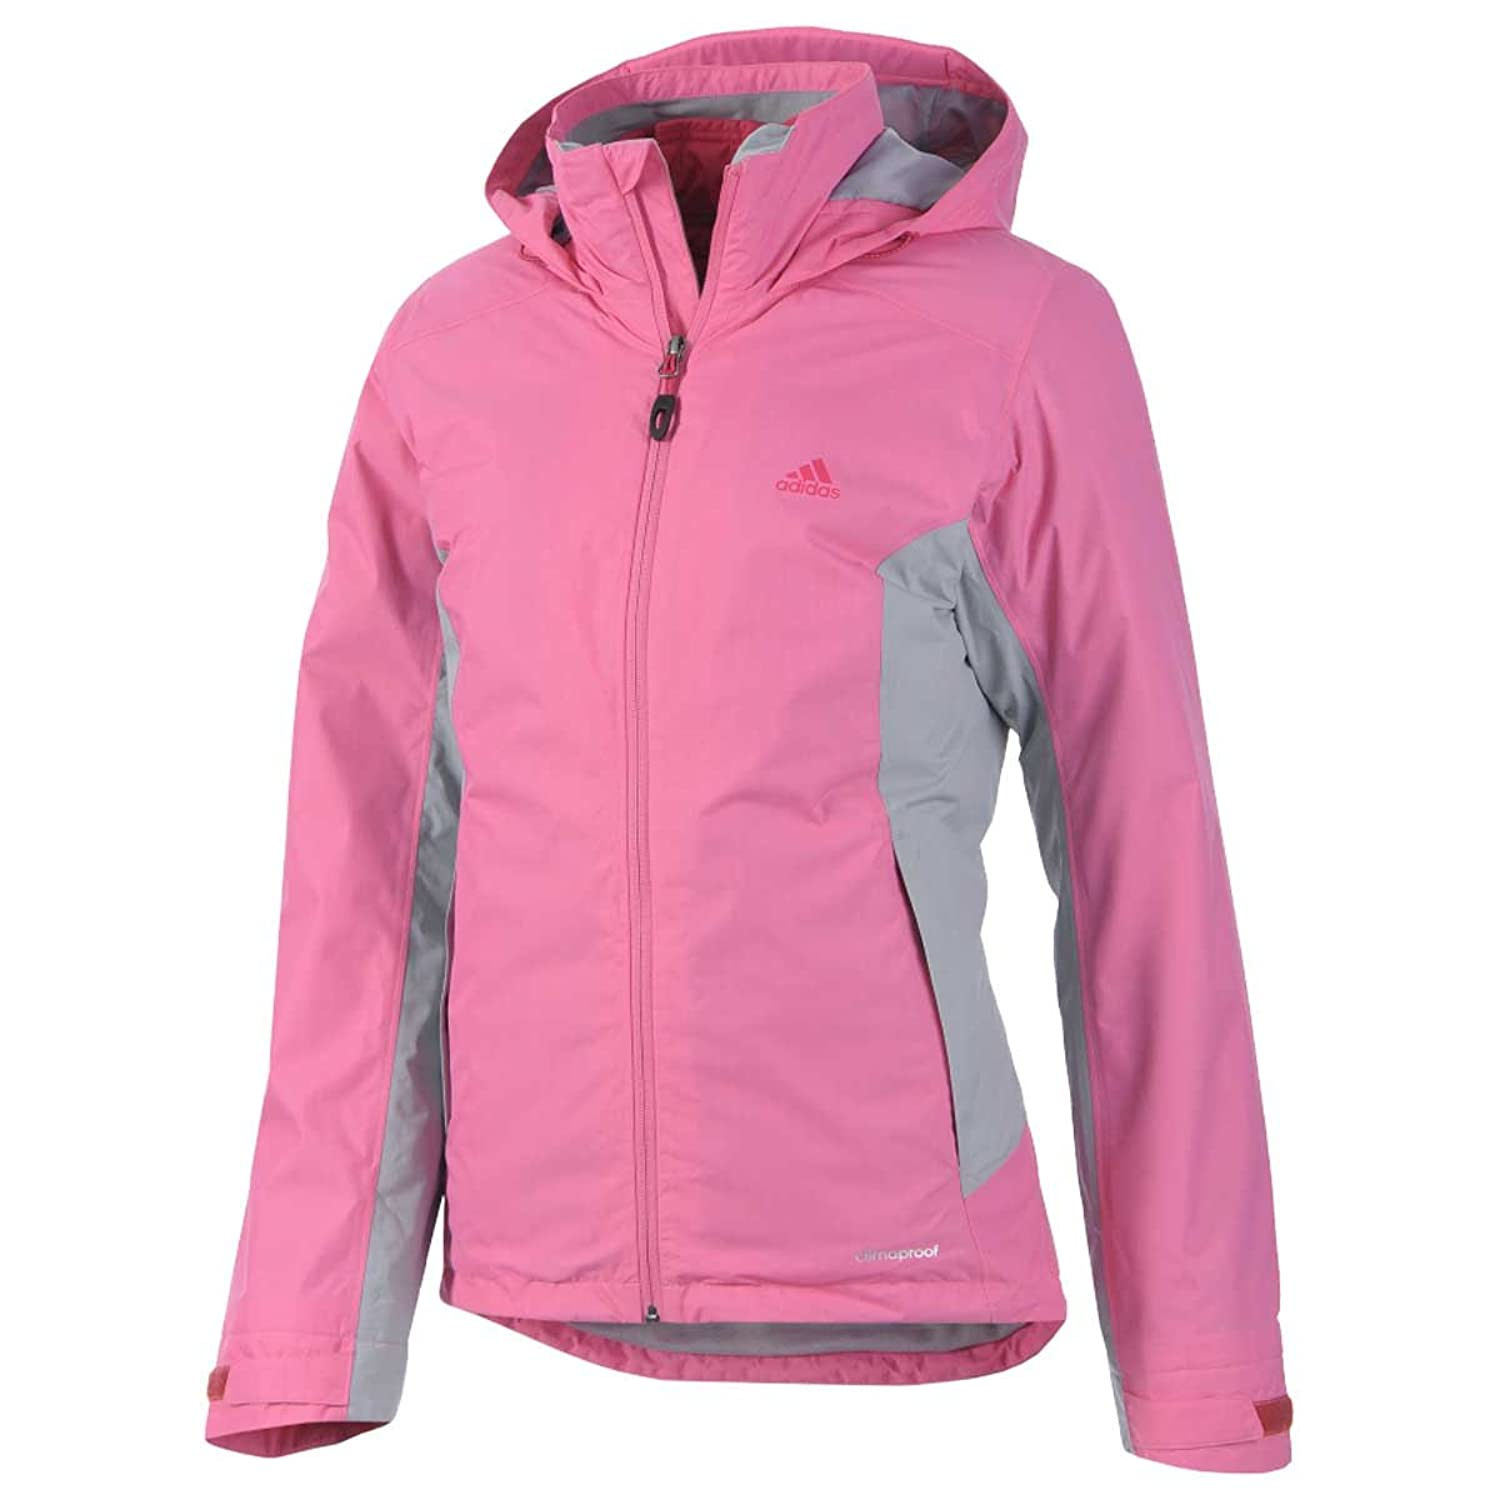 50%OFF Adidas Women's Hiking 3 in 1 Down Wandertag Jacket